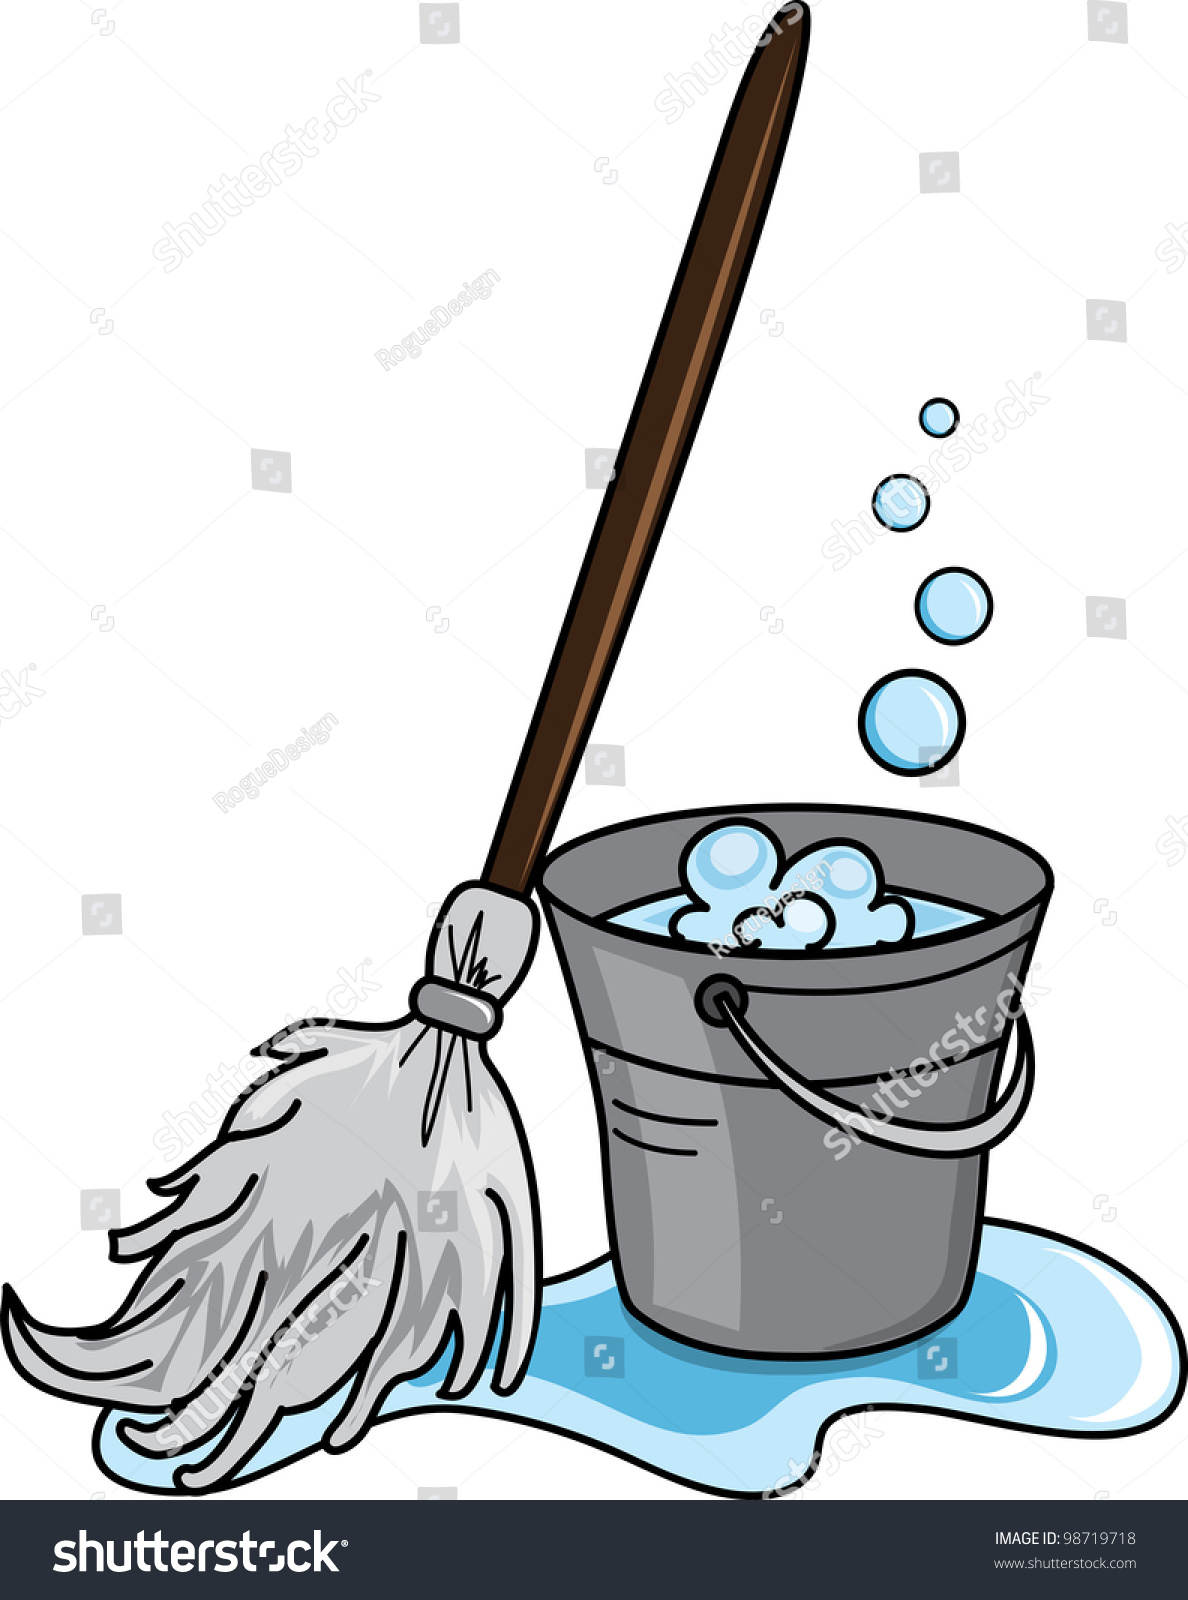 Cleaning Bucket Clip Art